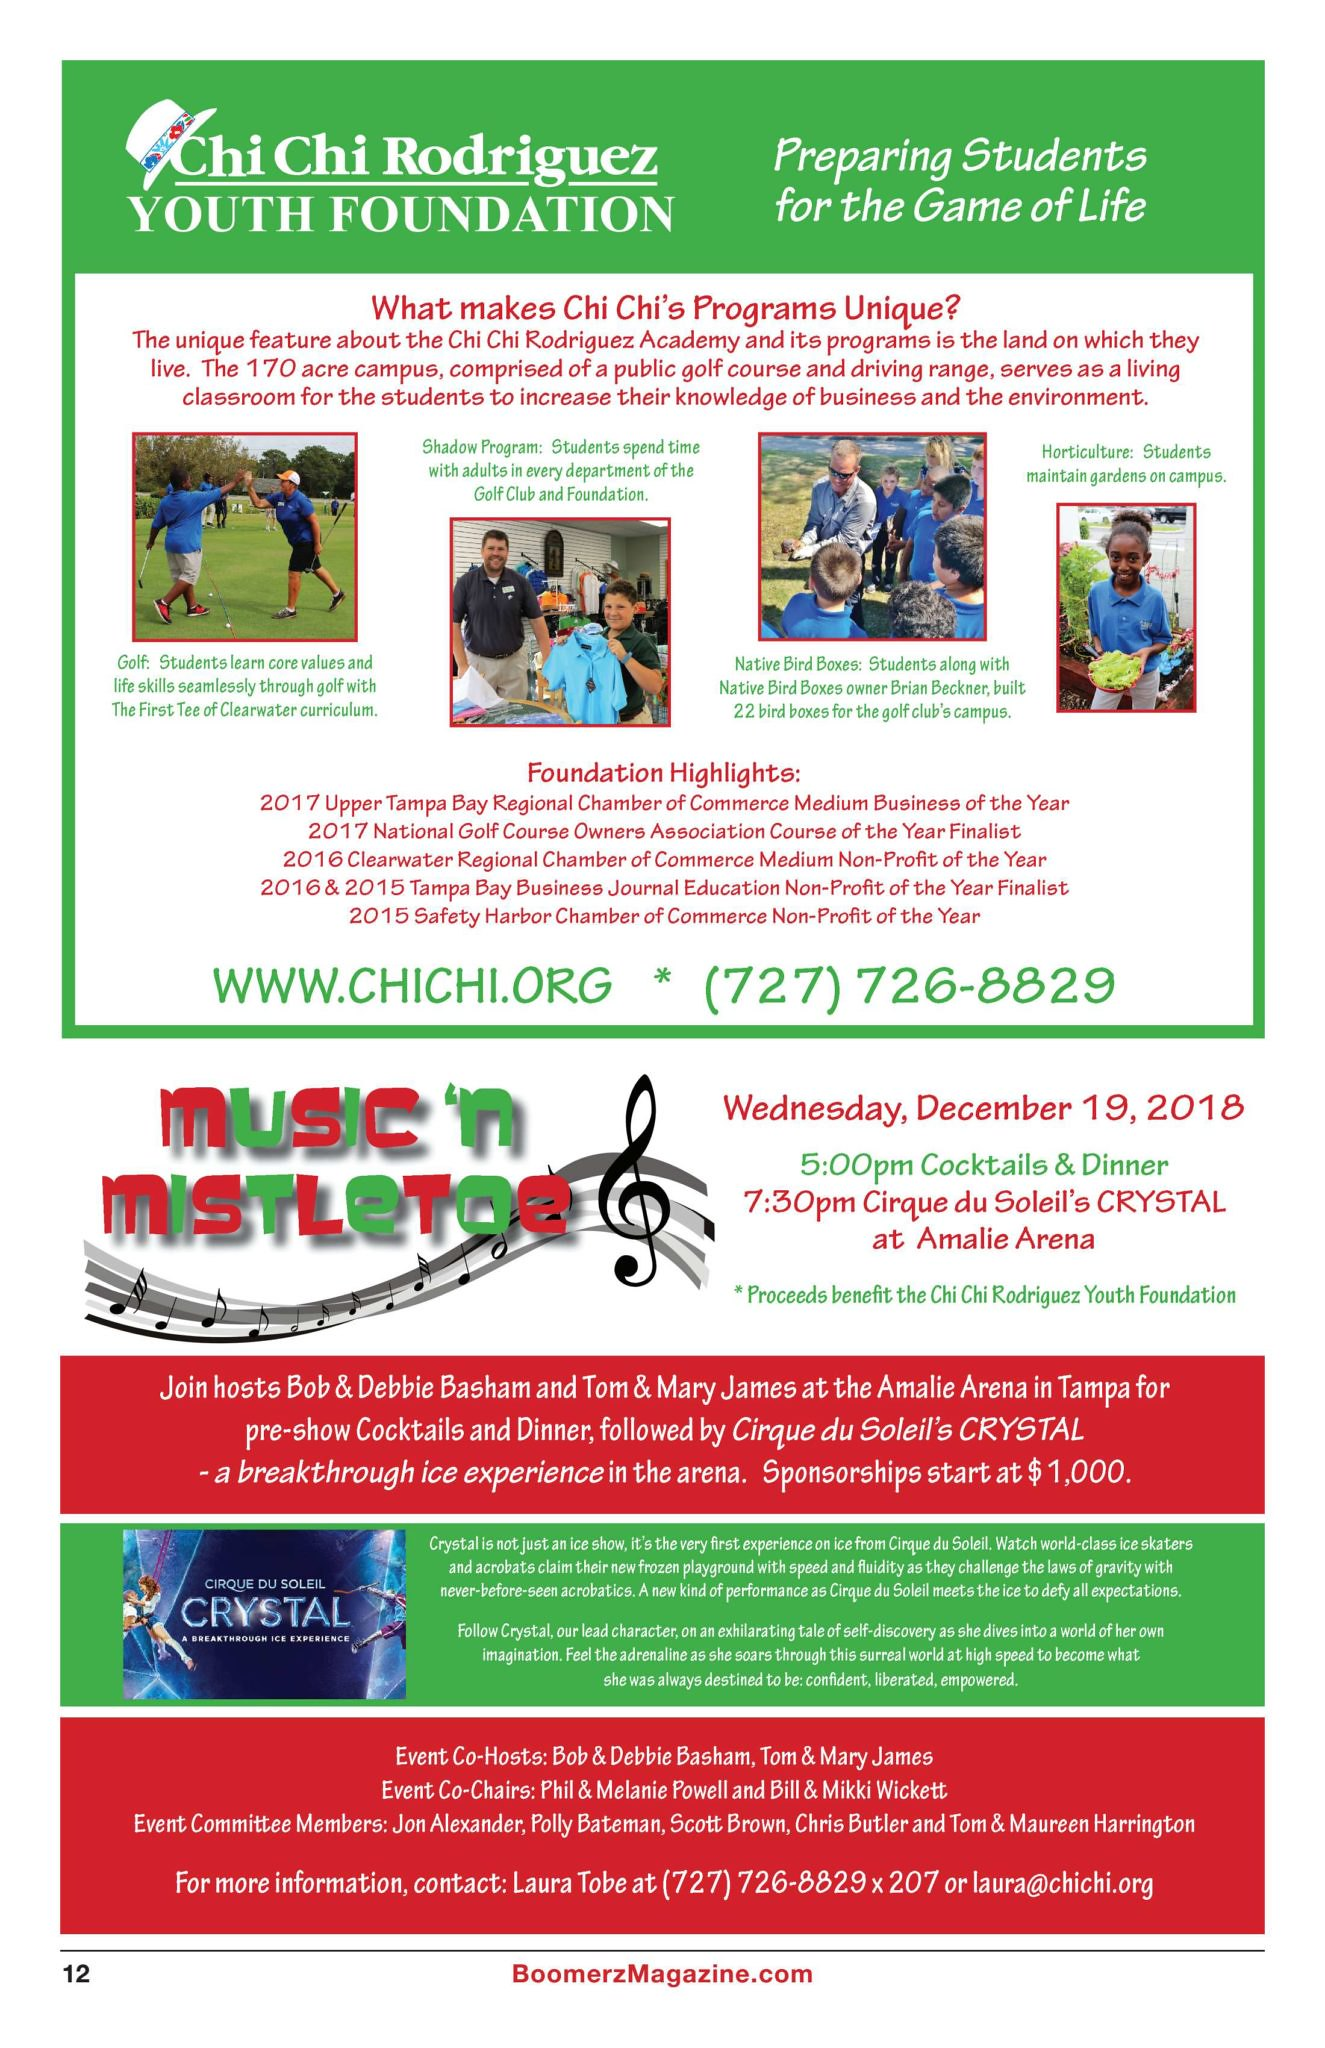 Boomerz Magazine 2018 November Chi Chi Rodriguez Youth Foundation